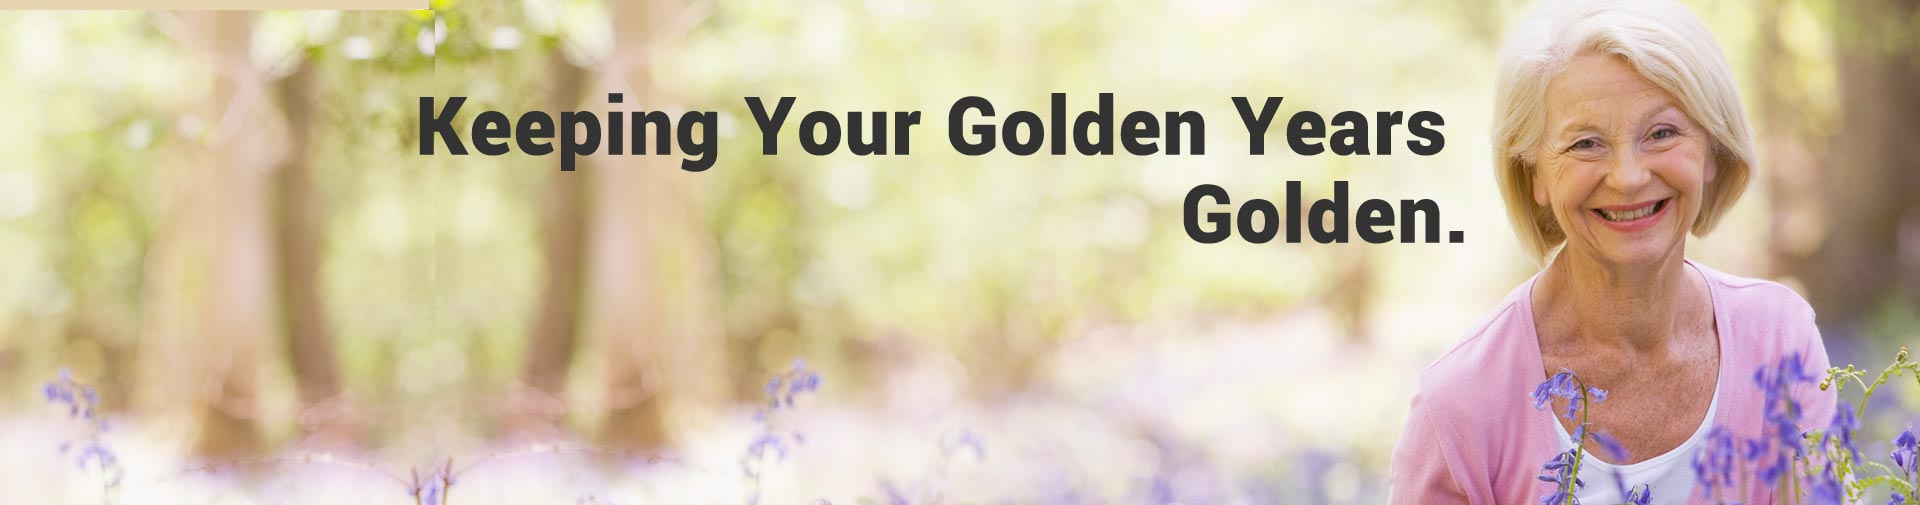 Keeping Your Golden Years Golden